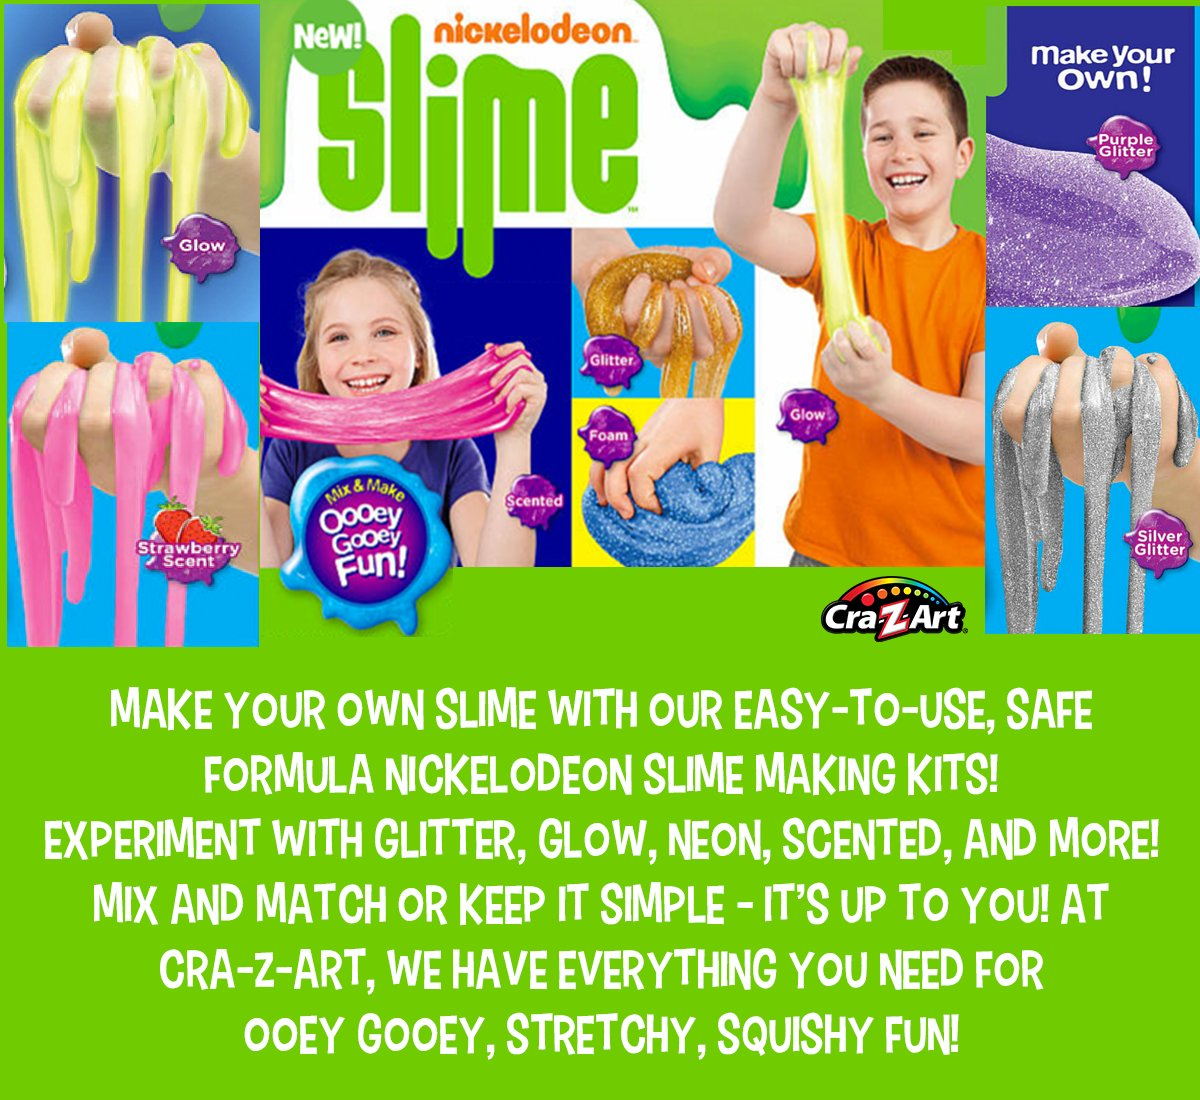 Exciting Left On Slime Making Kits Are Now Nickelodeon Slime Recipe Baking Soda Nickelodeon Slime Recipe Crazy Art And By Clickingon Button nice food Nickelodeon Slime Recipe